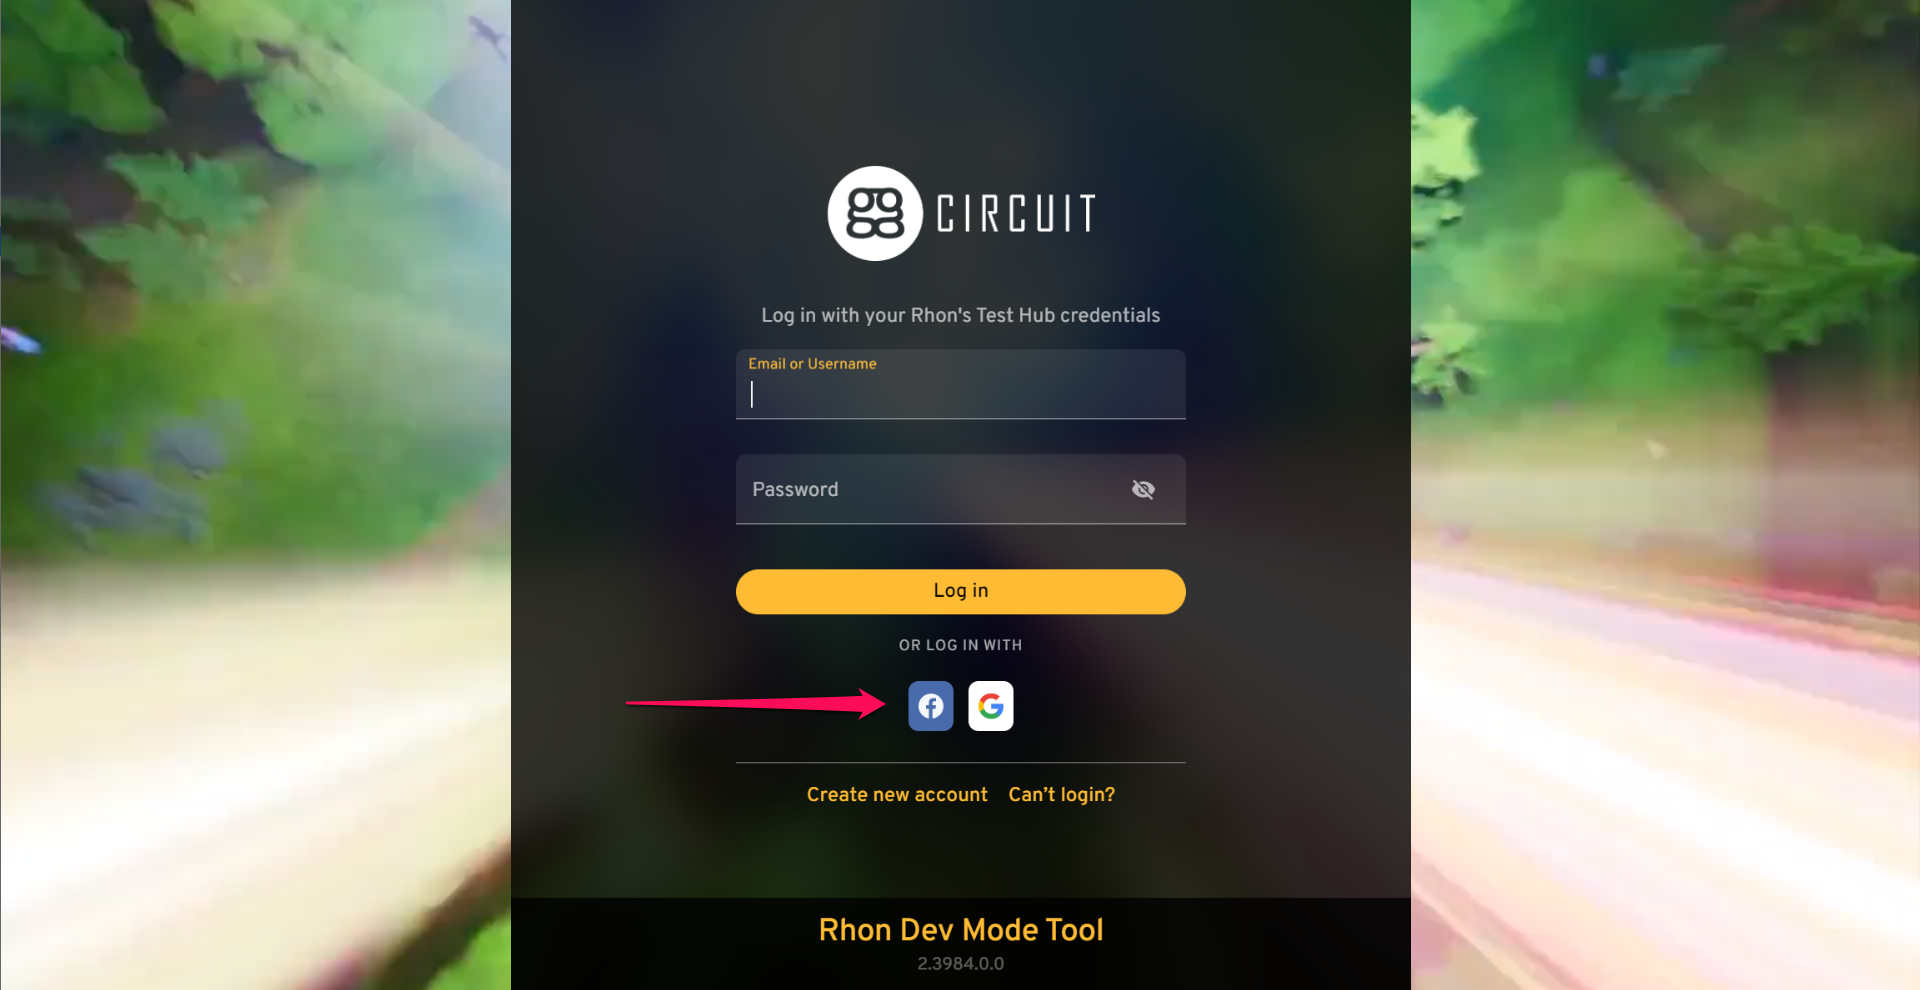 A users data will never be compromised when logging in using the QR code feature